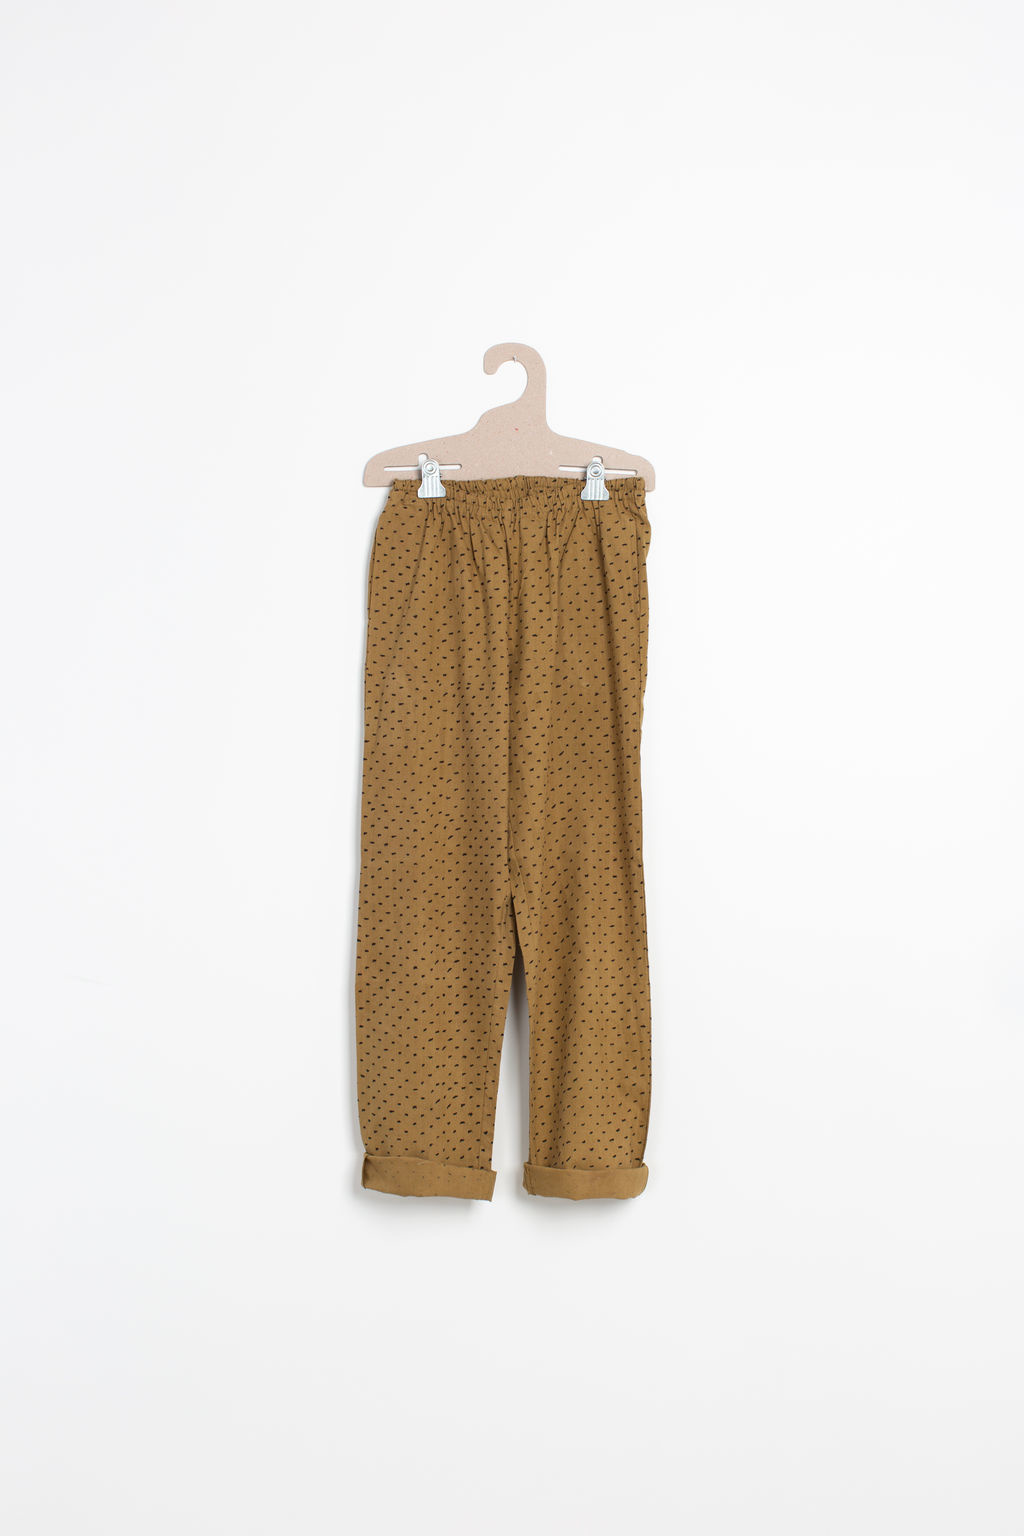 PO-EM Lounger Pants in Spotted